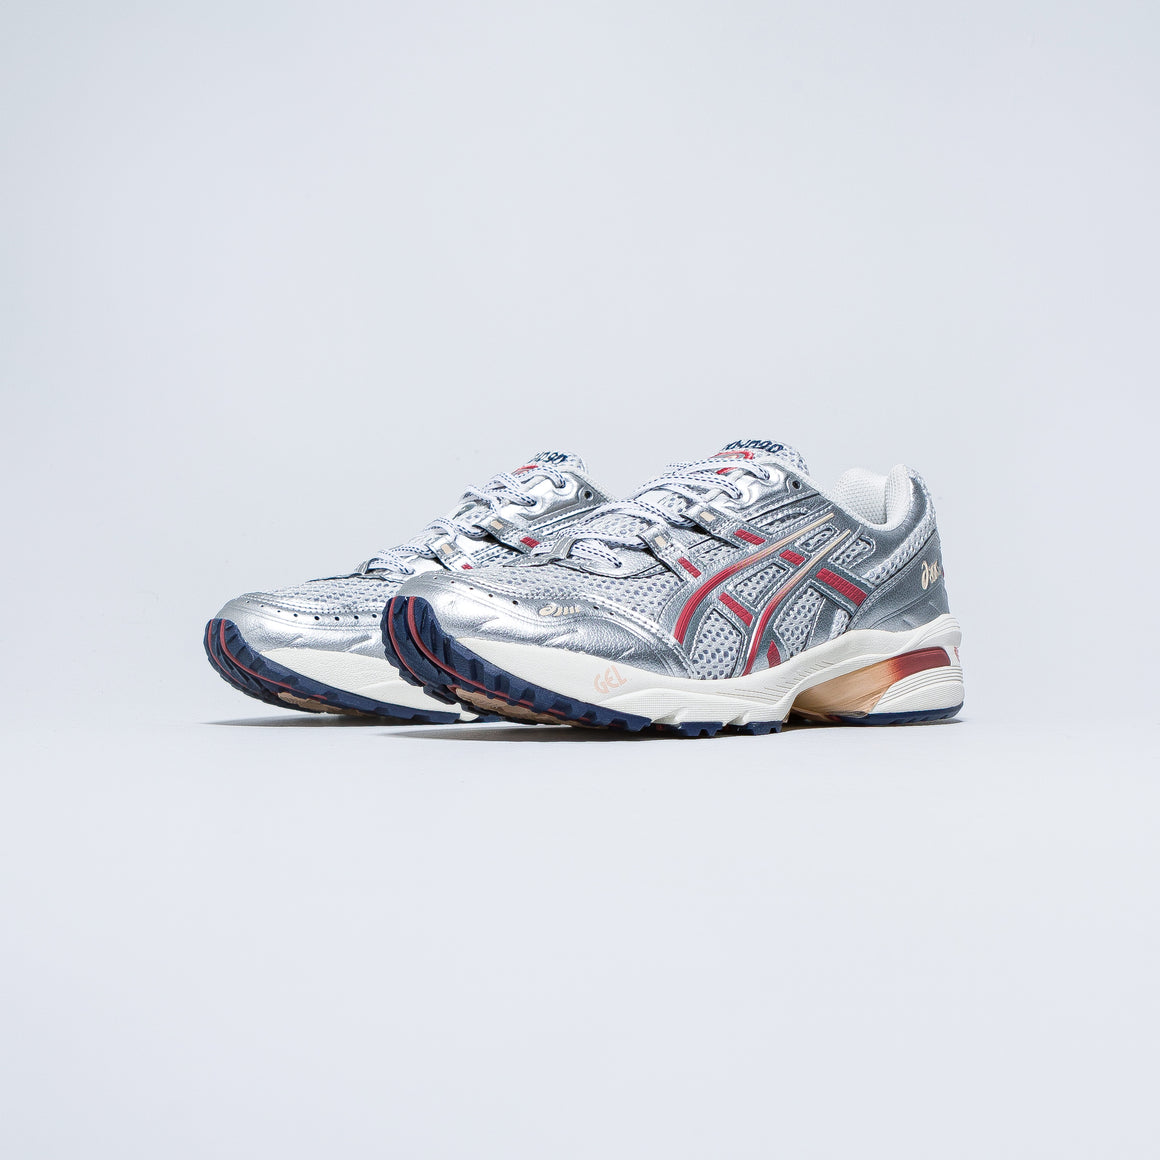 Asics - Women's Gel-1090 - Glacier Grey/Pure Silver - Up There